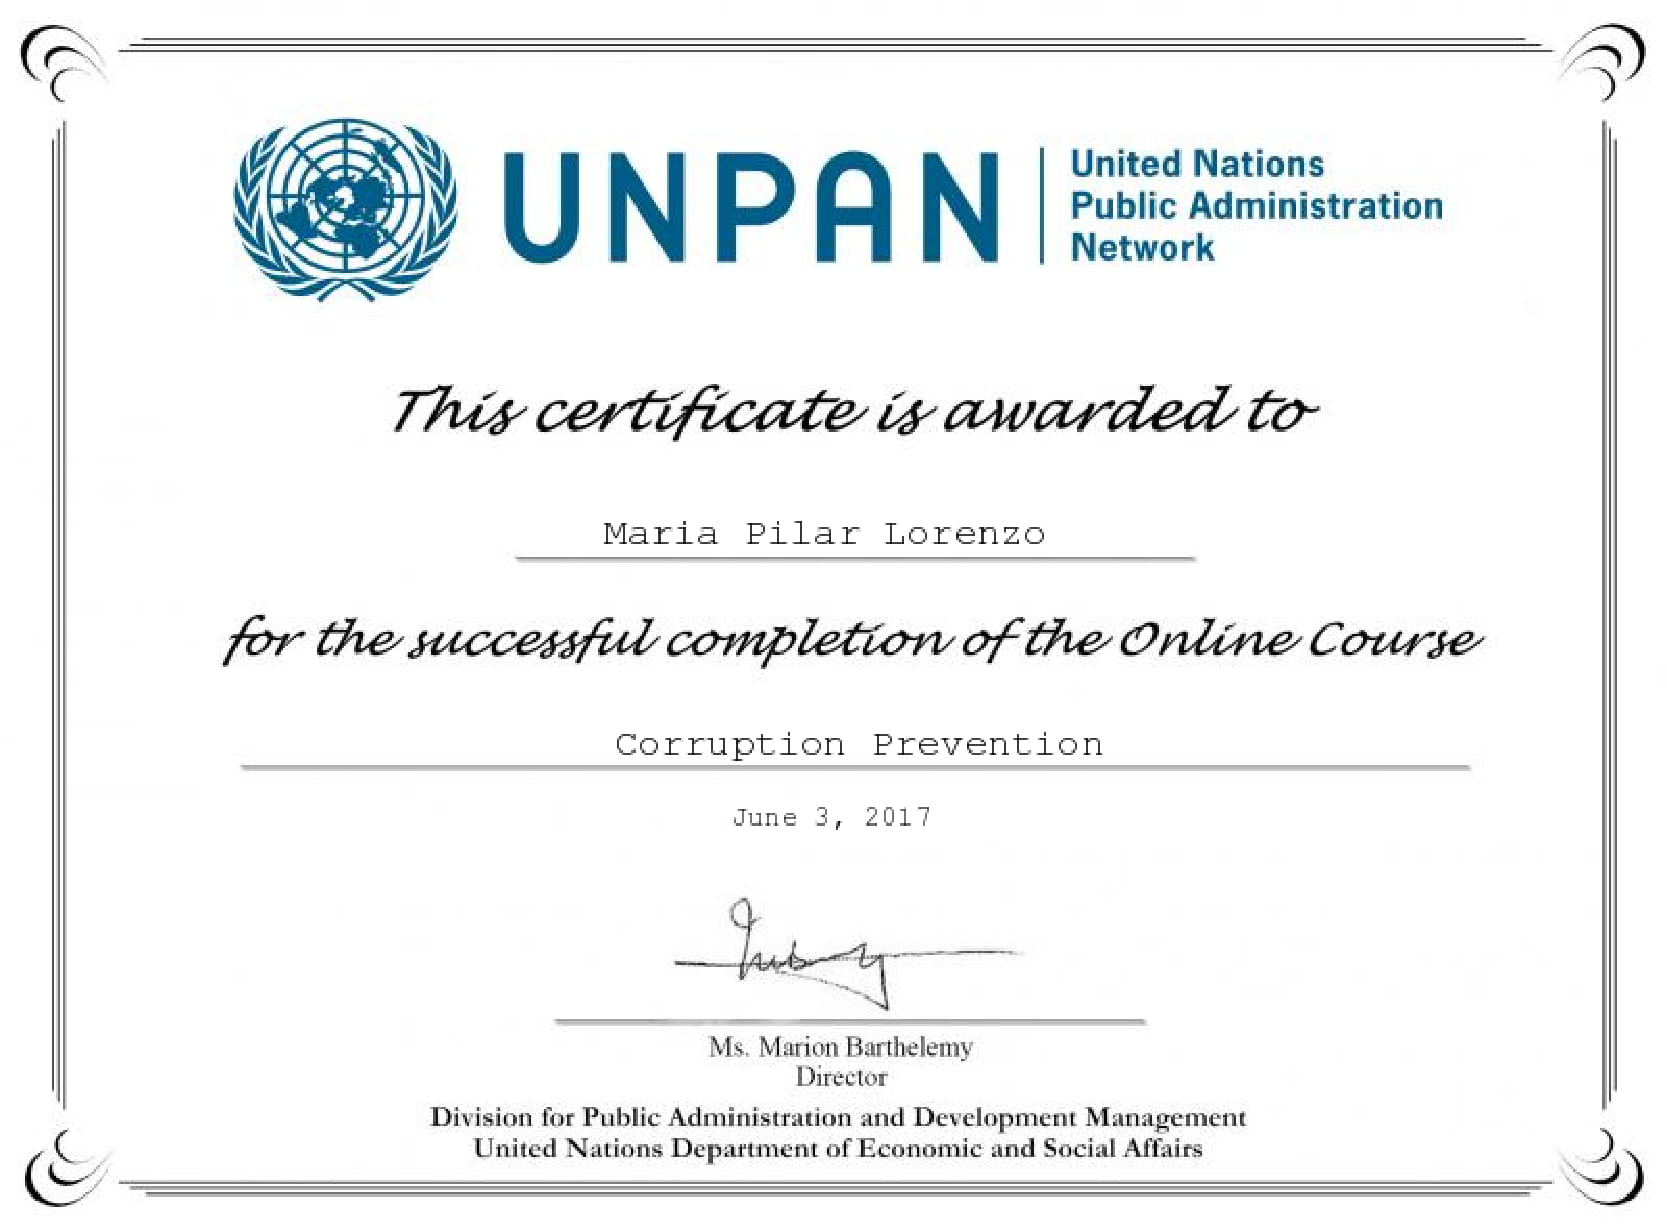 UNPAN Corruption Prevention-1